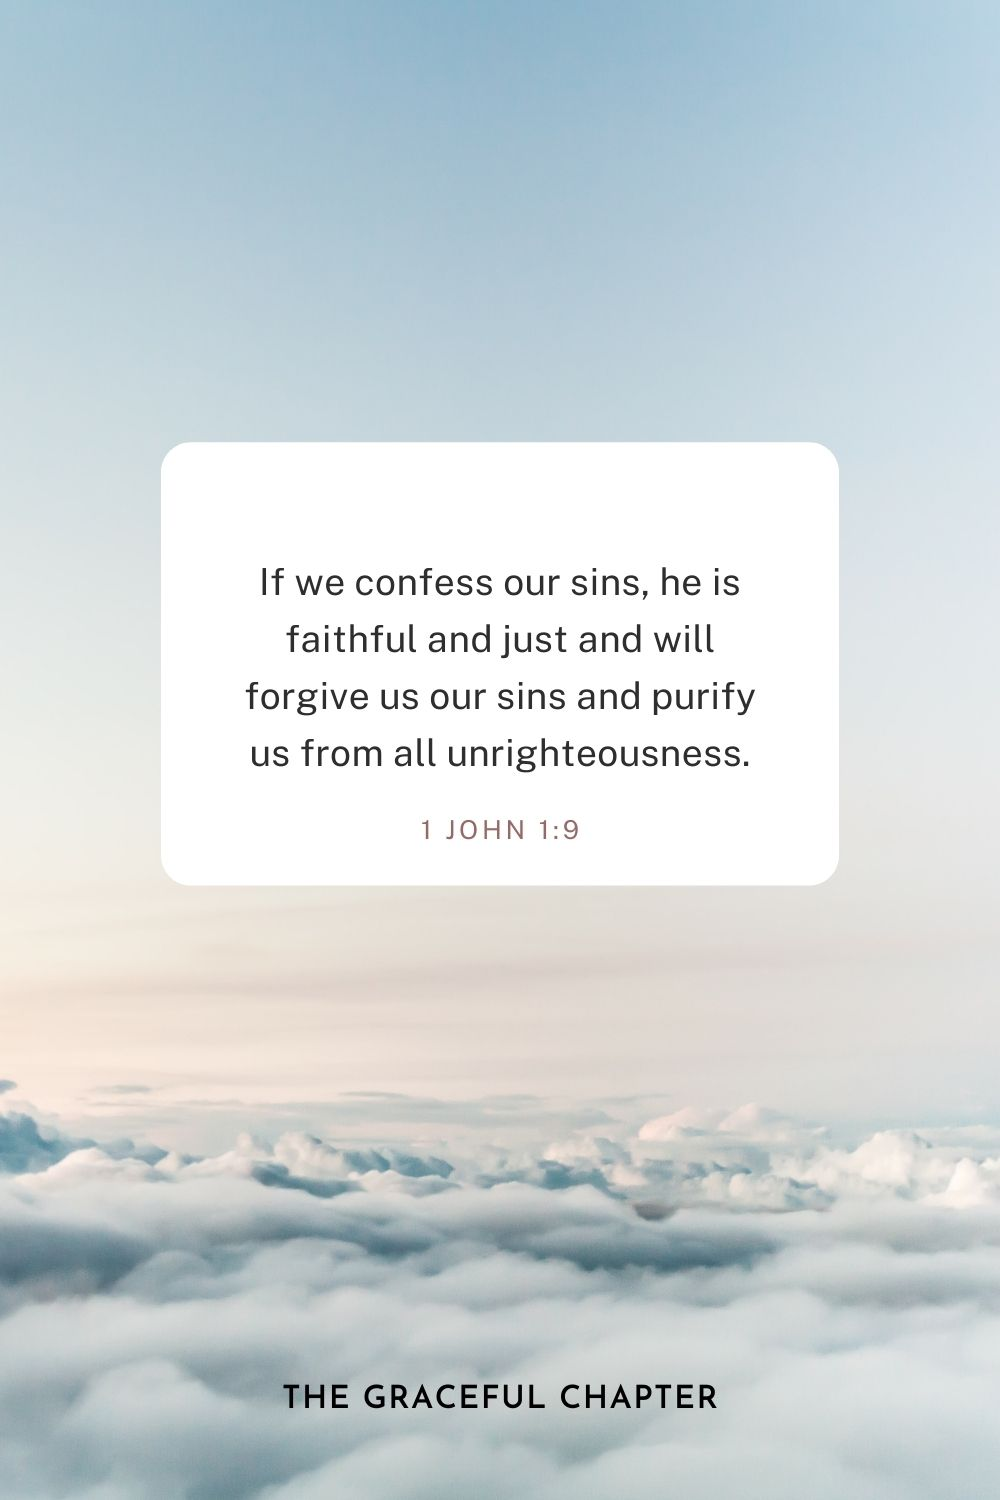 If we confess our sins, he is faithful and just and will forgive us our sins and purify us from all unrighteousness. 1 John 1:9